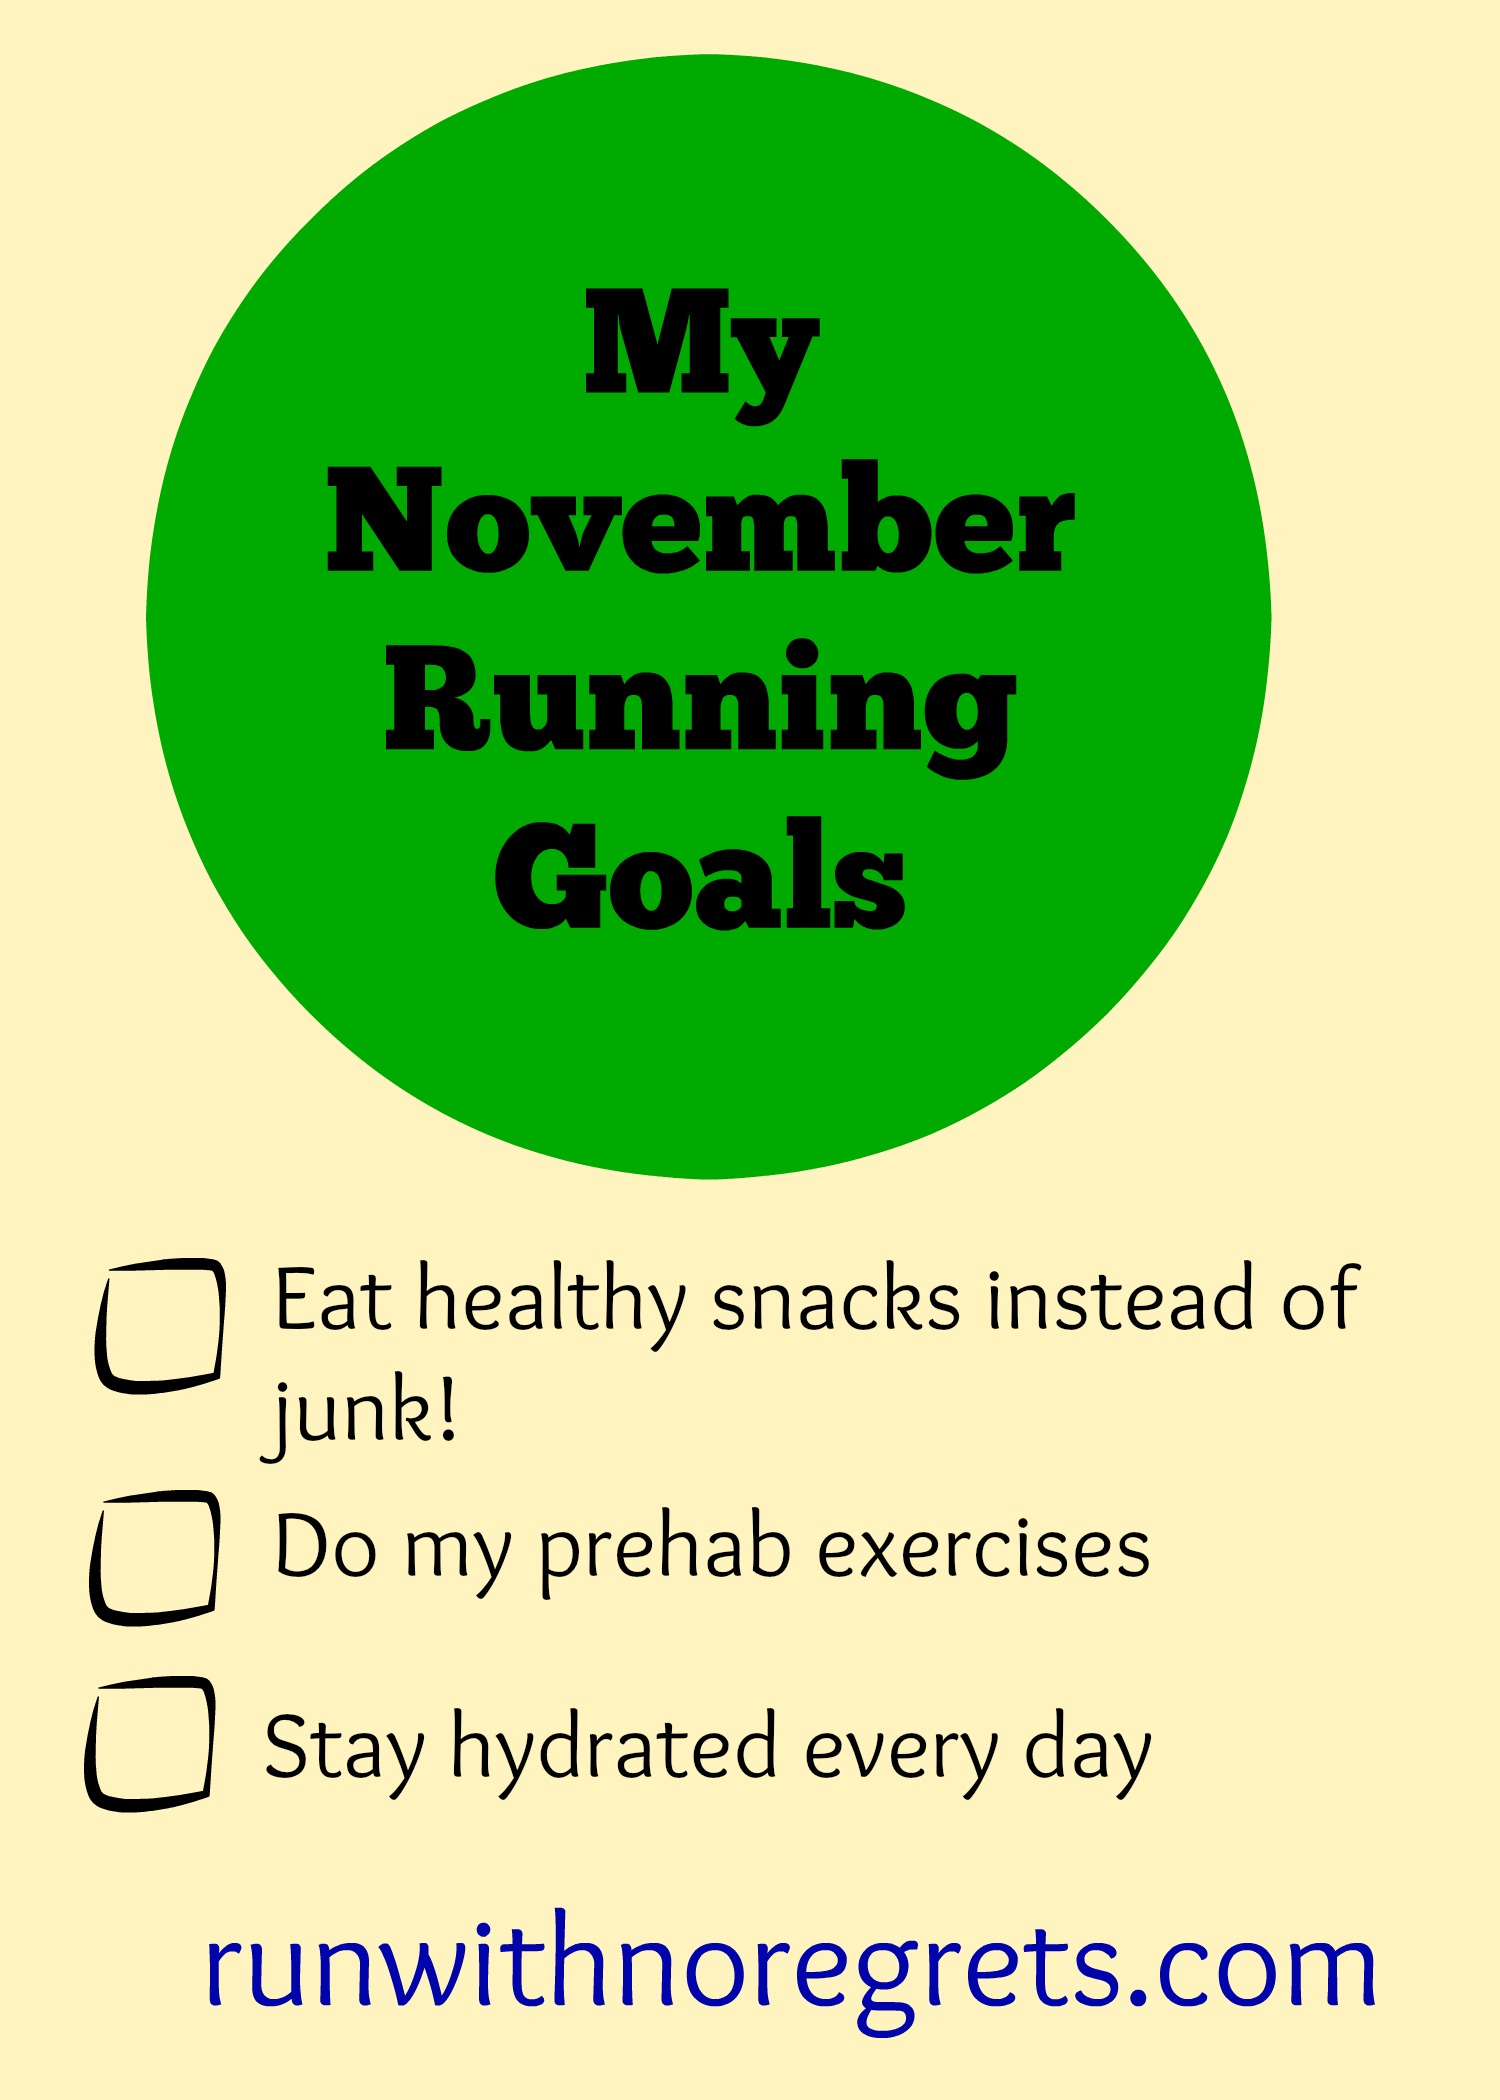 Do you keep track of your fitness goals for the month? In my latest post, I reflfect on October and look ahead to new goals in November! Check more running resources at runwithnoregrets.com!